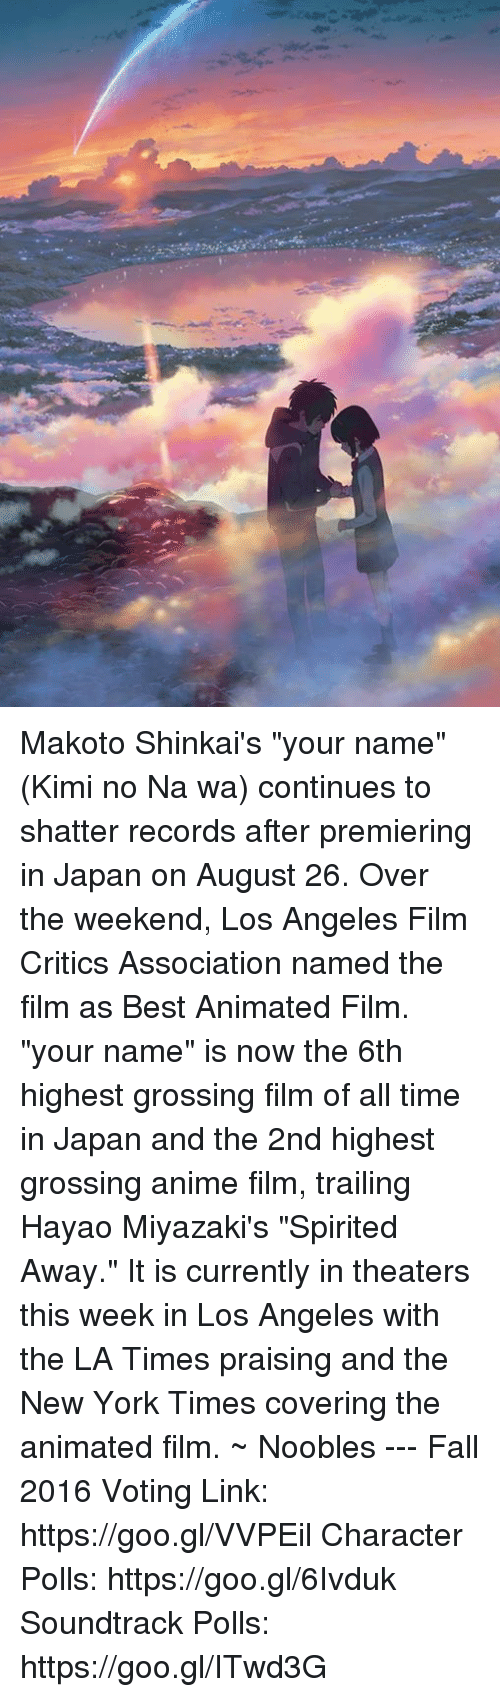 "best animes: Makoto Shinkai's ""your name"" (Kimi no Na wa) continues to shatter records after premiering in Japan on August 26.   Over the weekend, Los Angeles Film Critics Association named the film as Best Animated Film.   ""your name"" is now the 6th highest grossing film of all time in Japan and the 2nd highest grossing anime film, trailing Hayao Miyazaki's ""Spirited Away.""   It is currently in theaters this week in Los Angeles with the LA Times praising and the New York Times covering the animated film.  ~ Noobles --- Fall 2016 Voting Link: https://goo.gl/VVPEil Character Polls: https://goo.gl/6Ivduk Soundtrack Polls: https://goo.gl/ITwd3G"